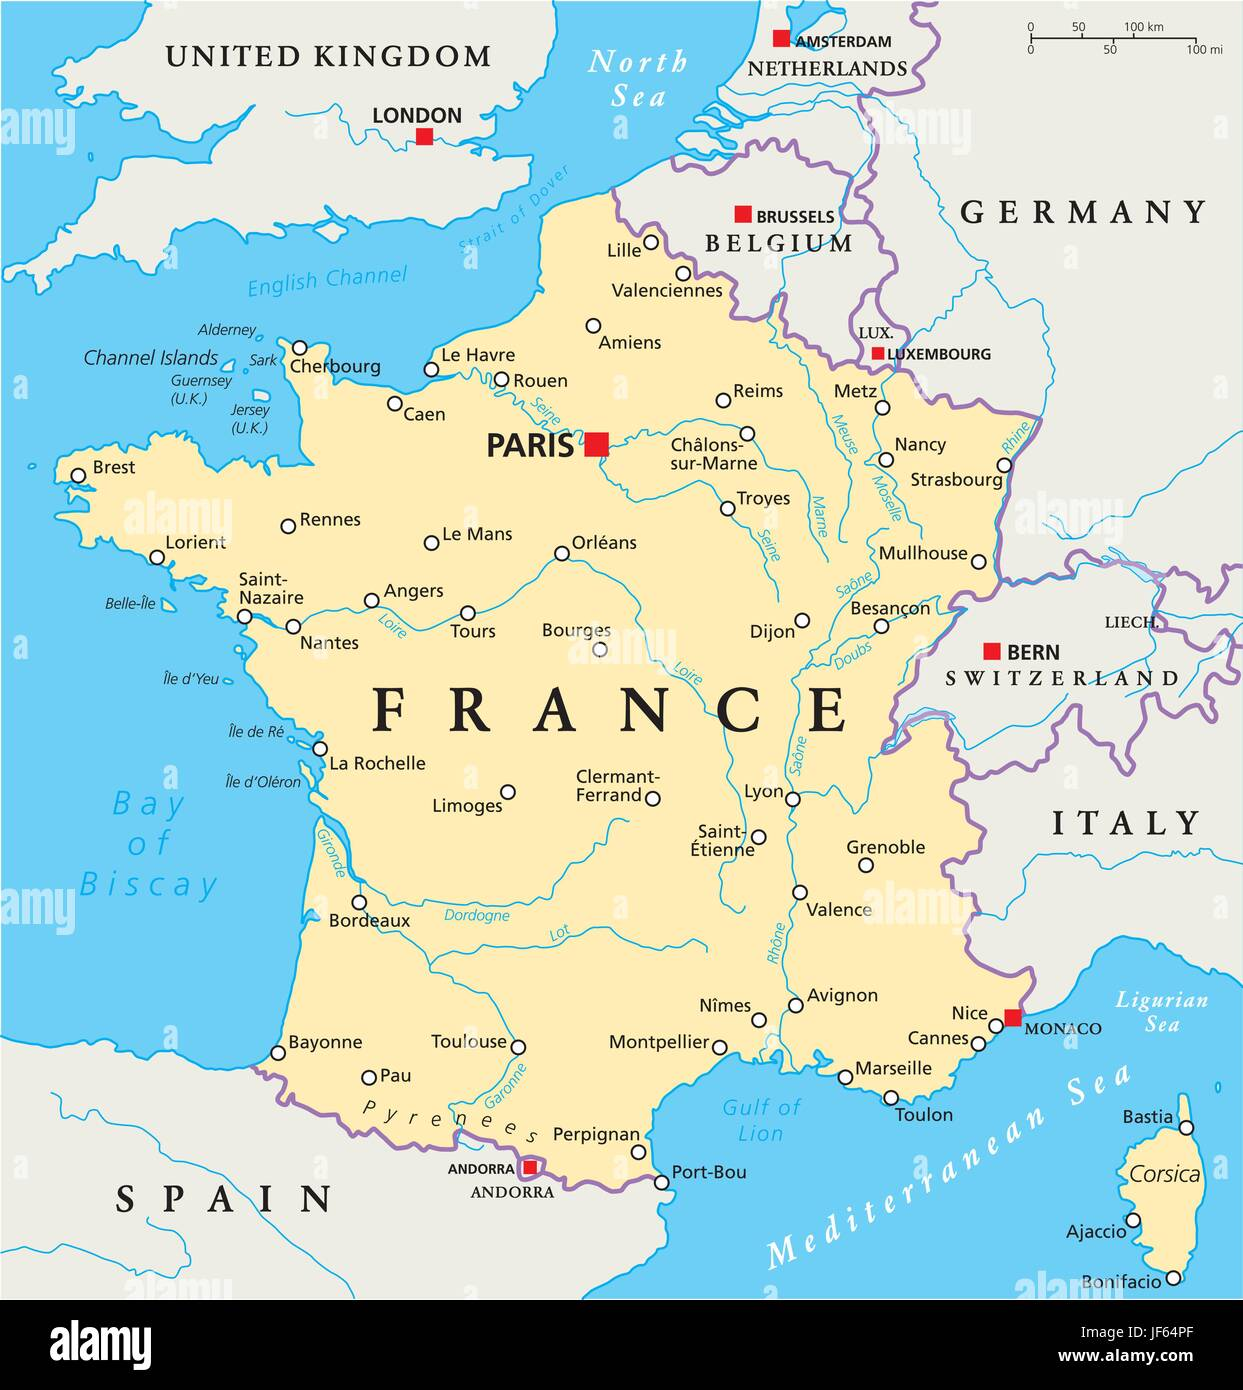 Map Of France And Corsica.Paris France Corsica Map Atlas Map Of The World Political